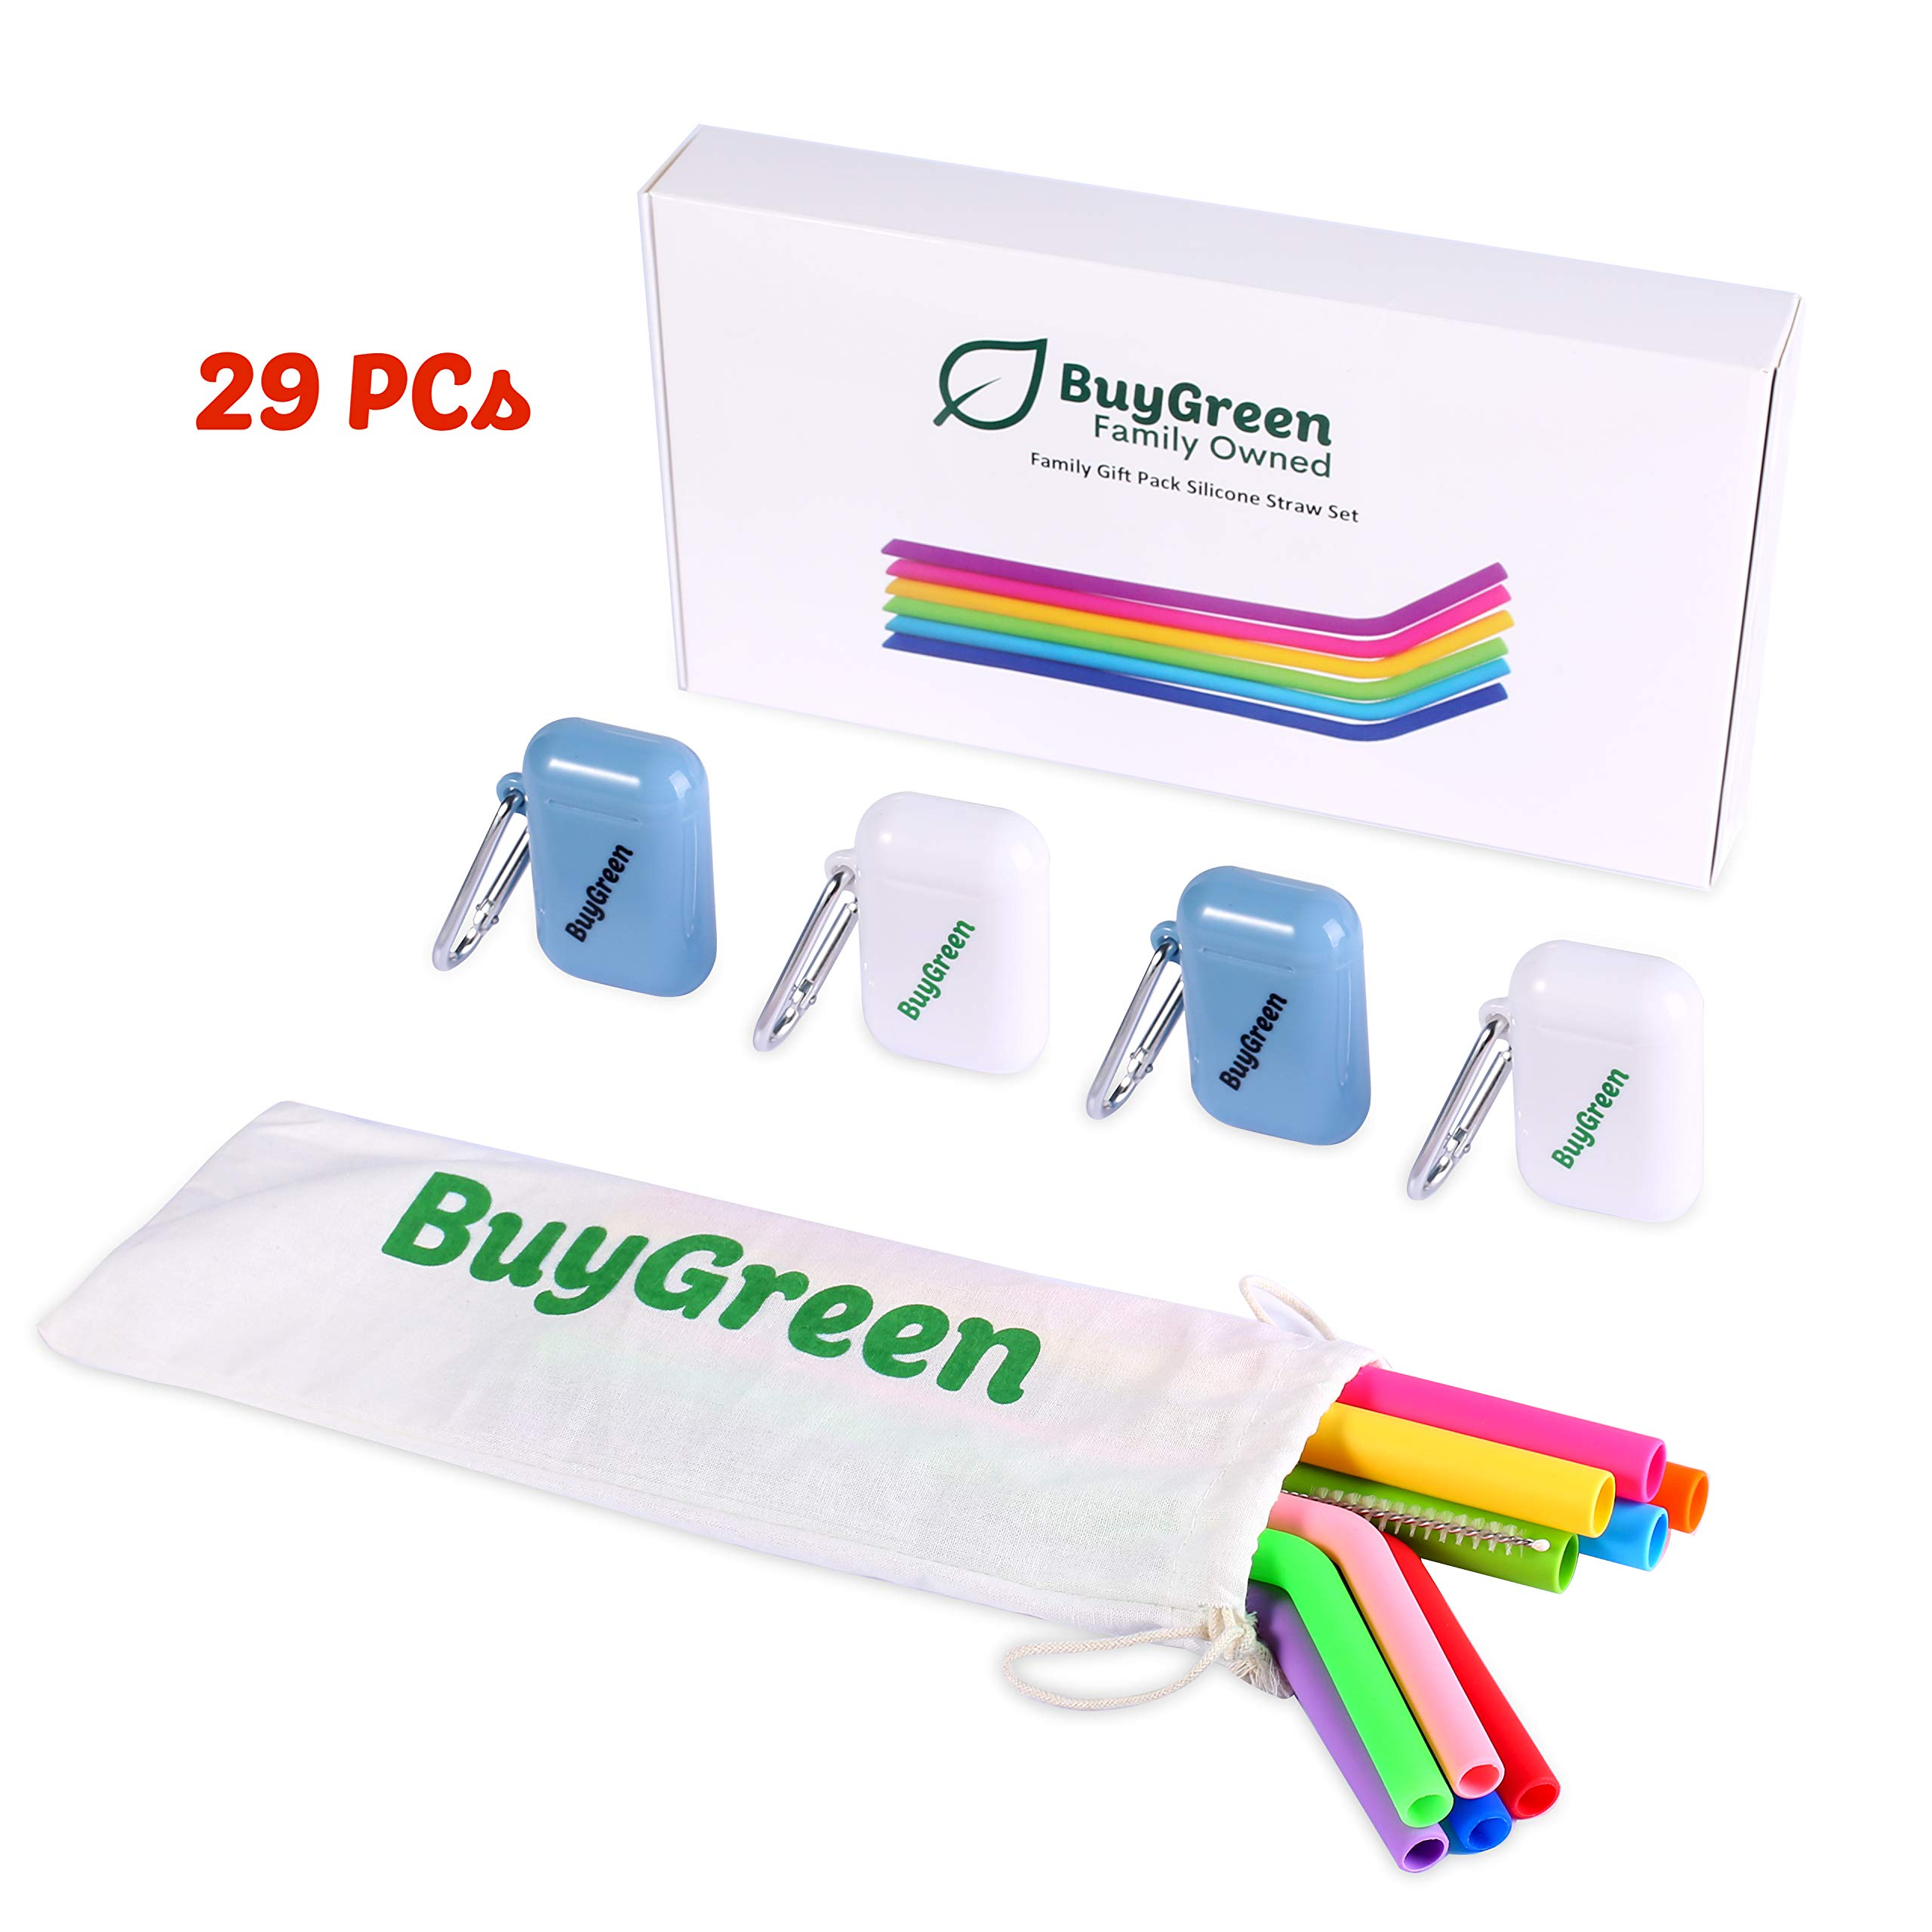 BuyGreen Silicone Friendly Collapsible Stainless